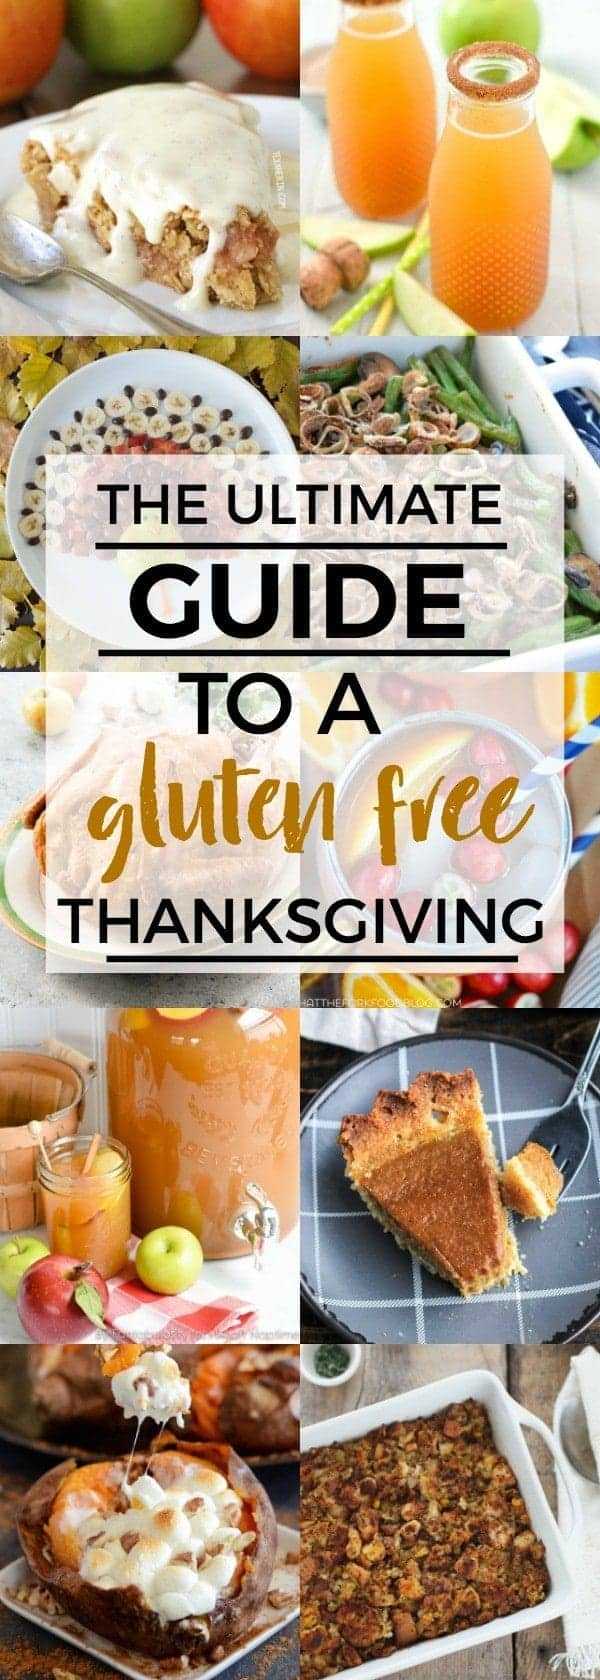 Recipes for the ultimate guide to a gluten free menu plus your ultimate guide to a gluten free Thanksgiving on What The Fork | @whattheforkblog | whattheforkfoodblog.com